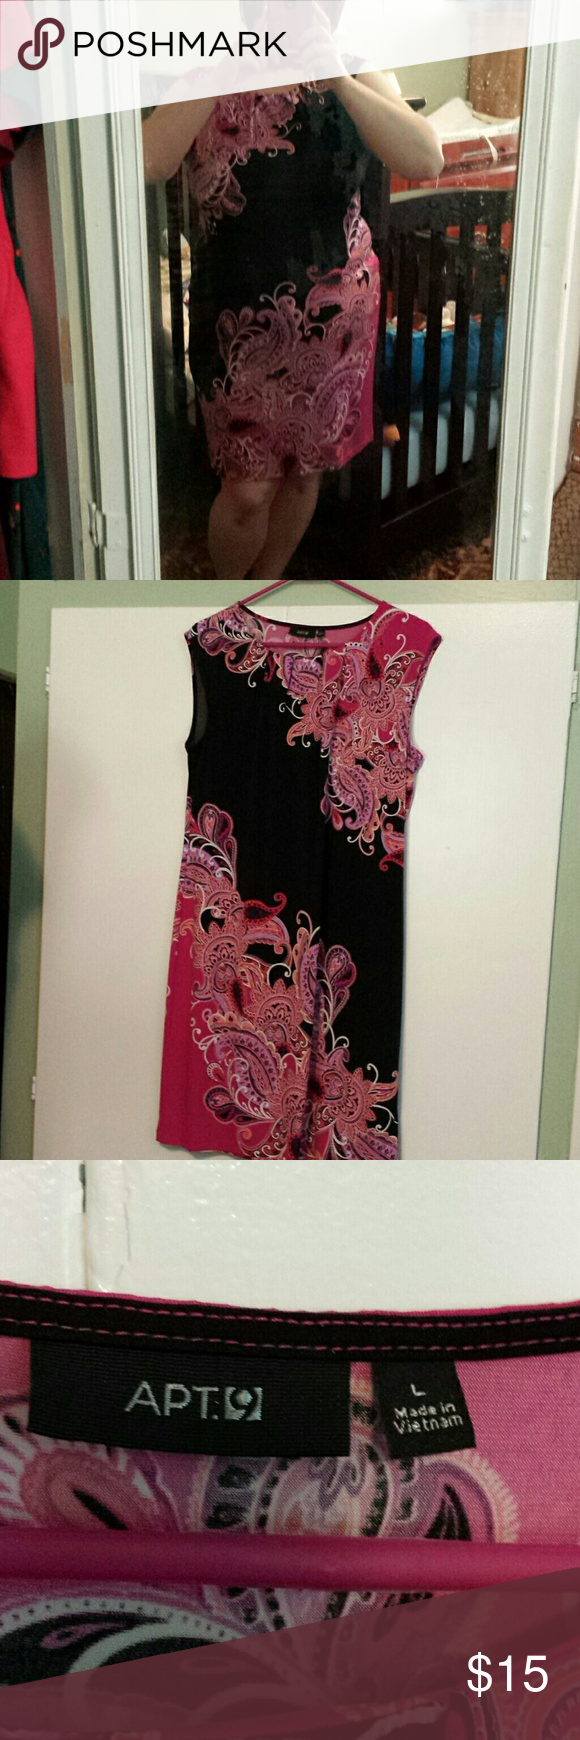 Apt midi dress size large midi dresses and feelings